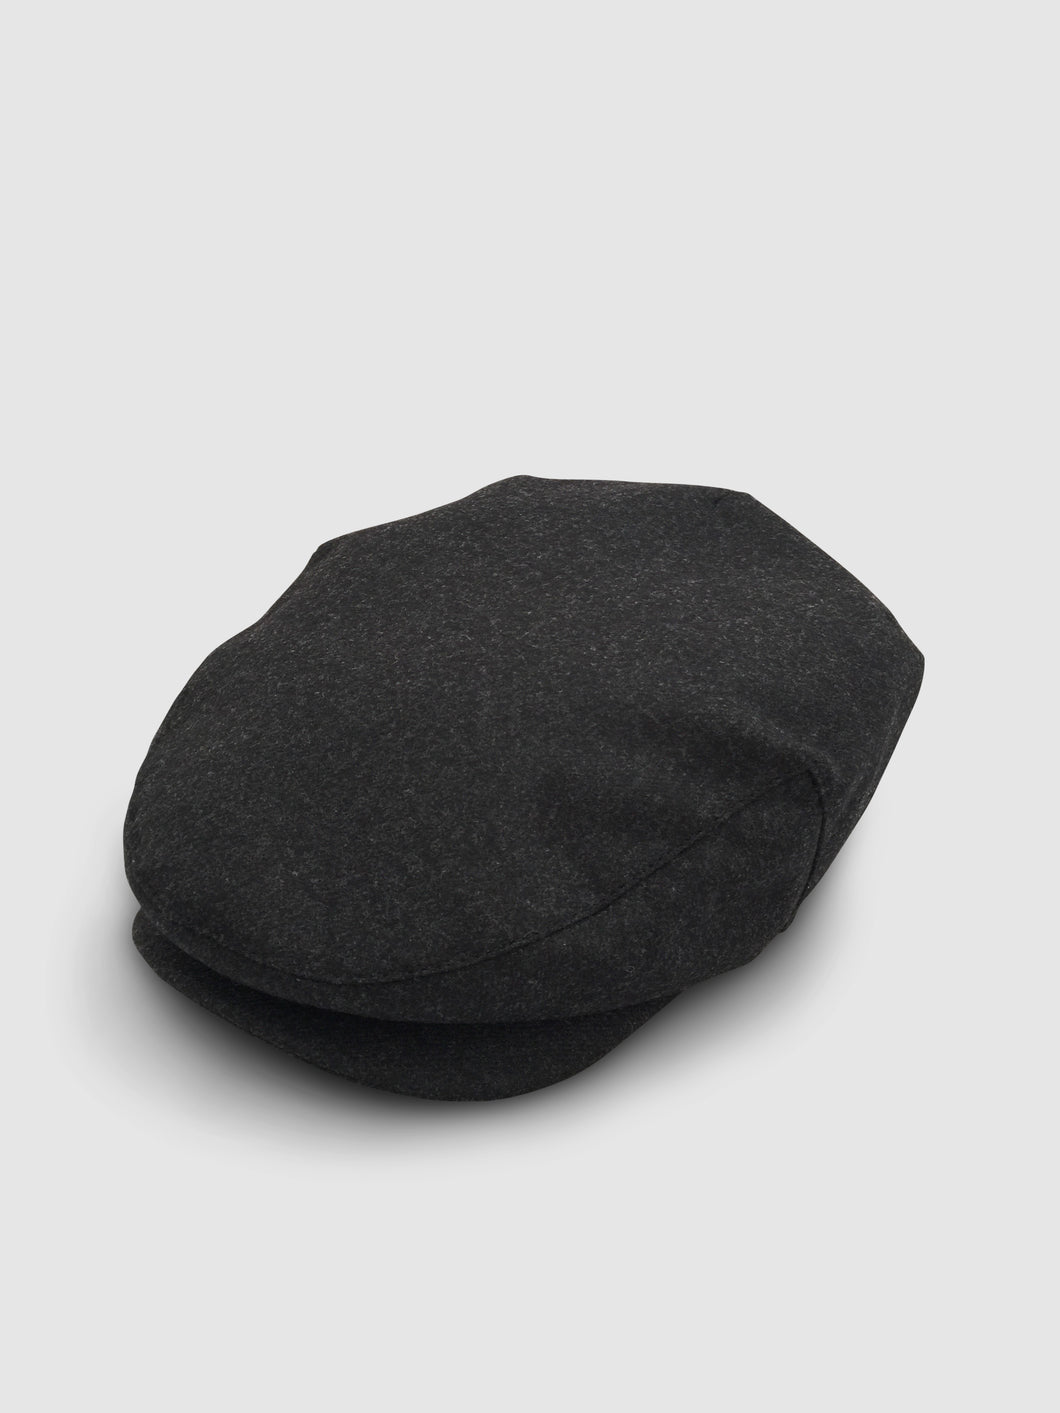 Waterproof Wool 101 Flat Cap, Grey Melange